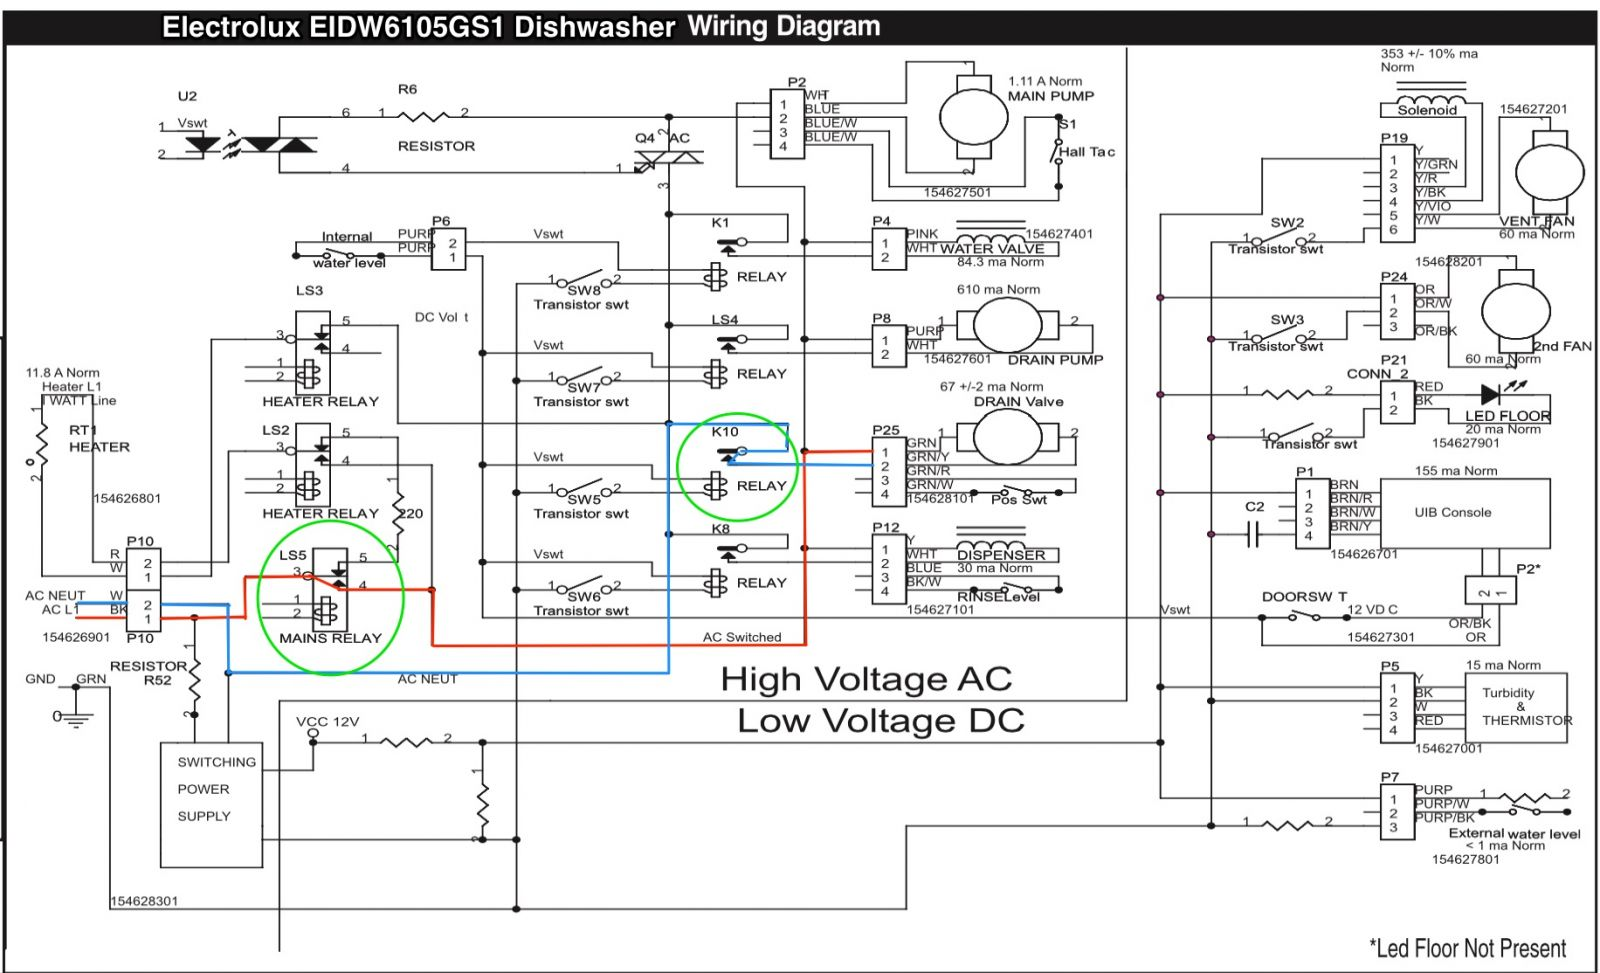 electrolux eidw6105gs1 dishwasher wiring diagram the appliantology